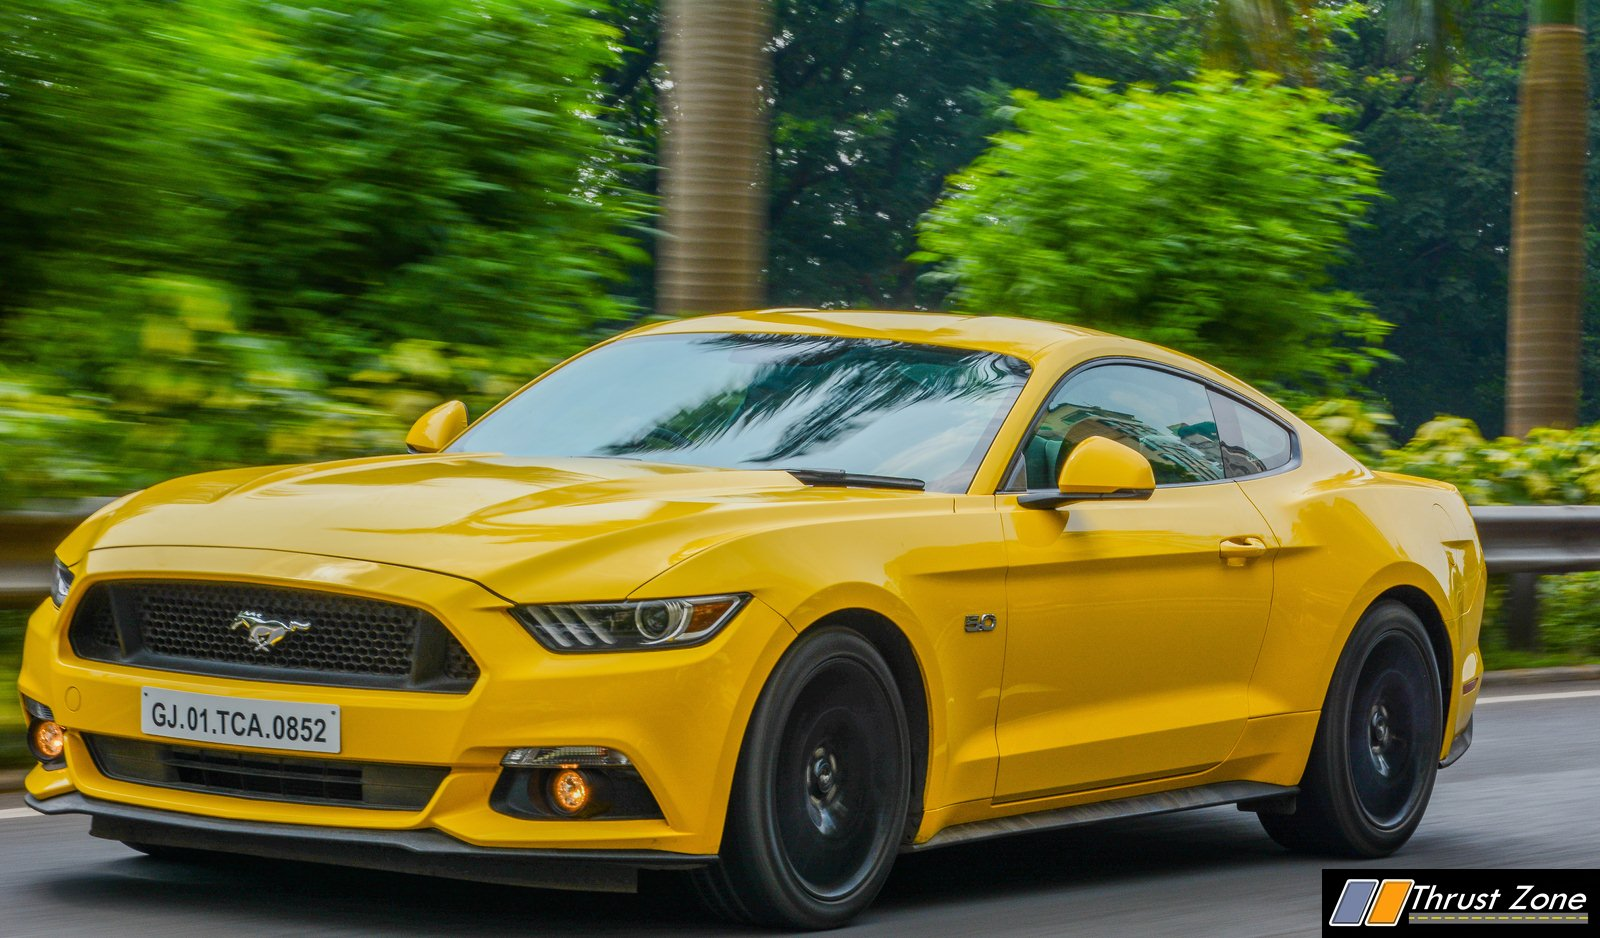 https://www.thrustzone.com/wp-content/uploads/2018/09/Ford-Mustang-India-V8-Review-12.jpg